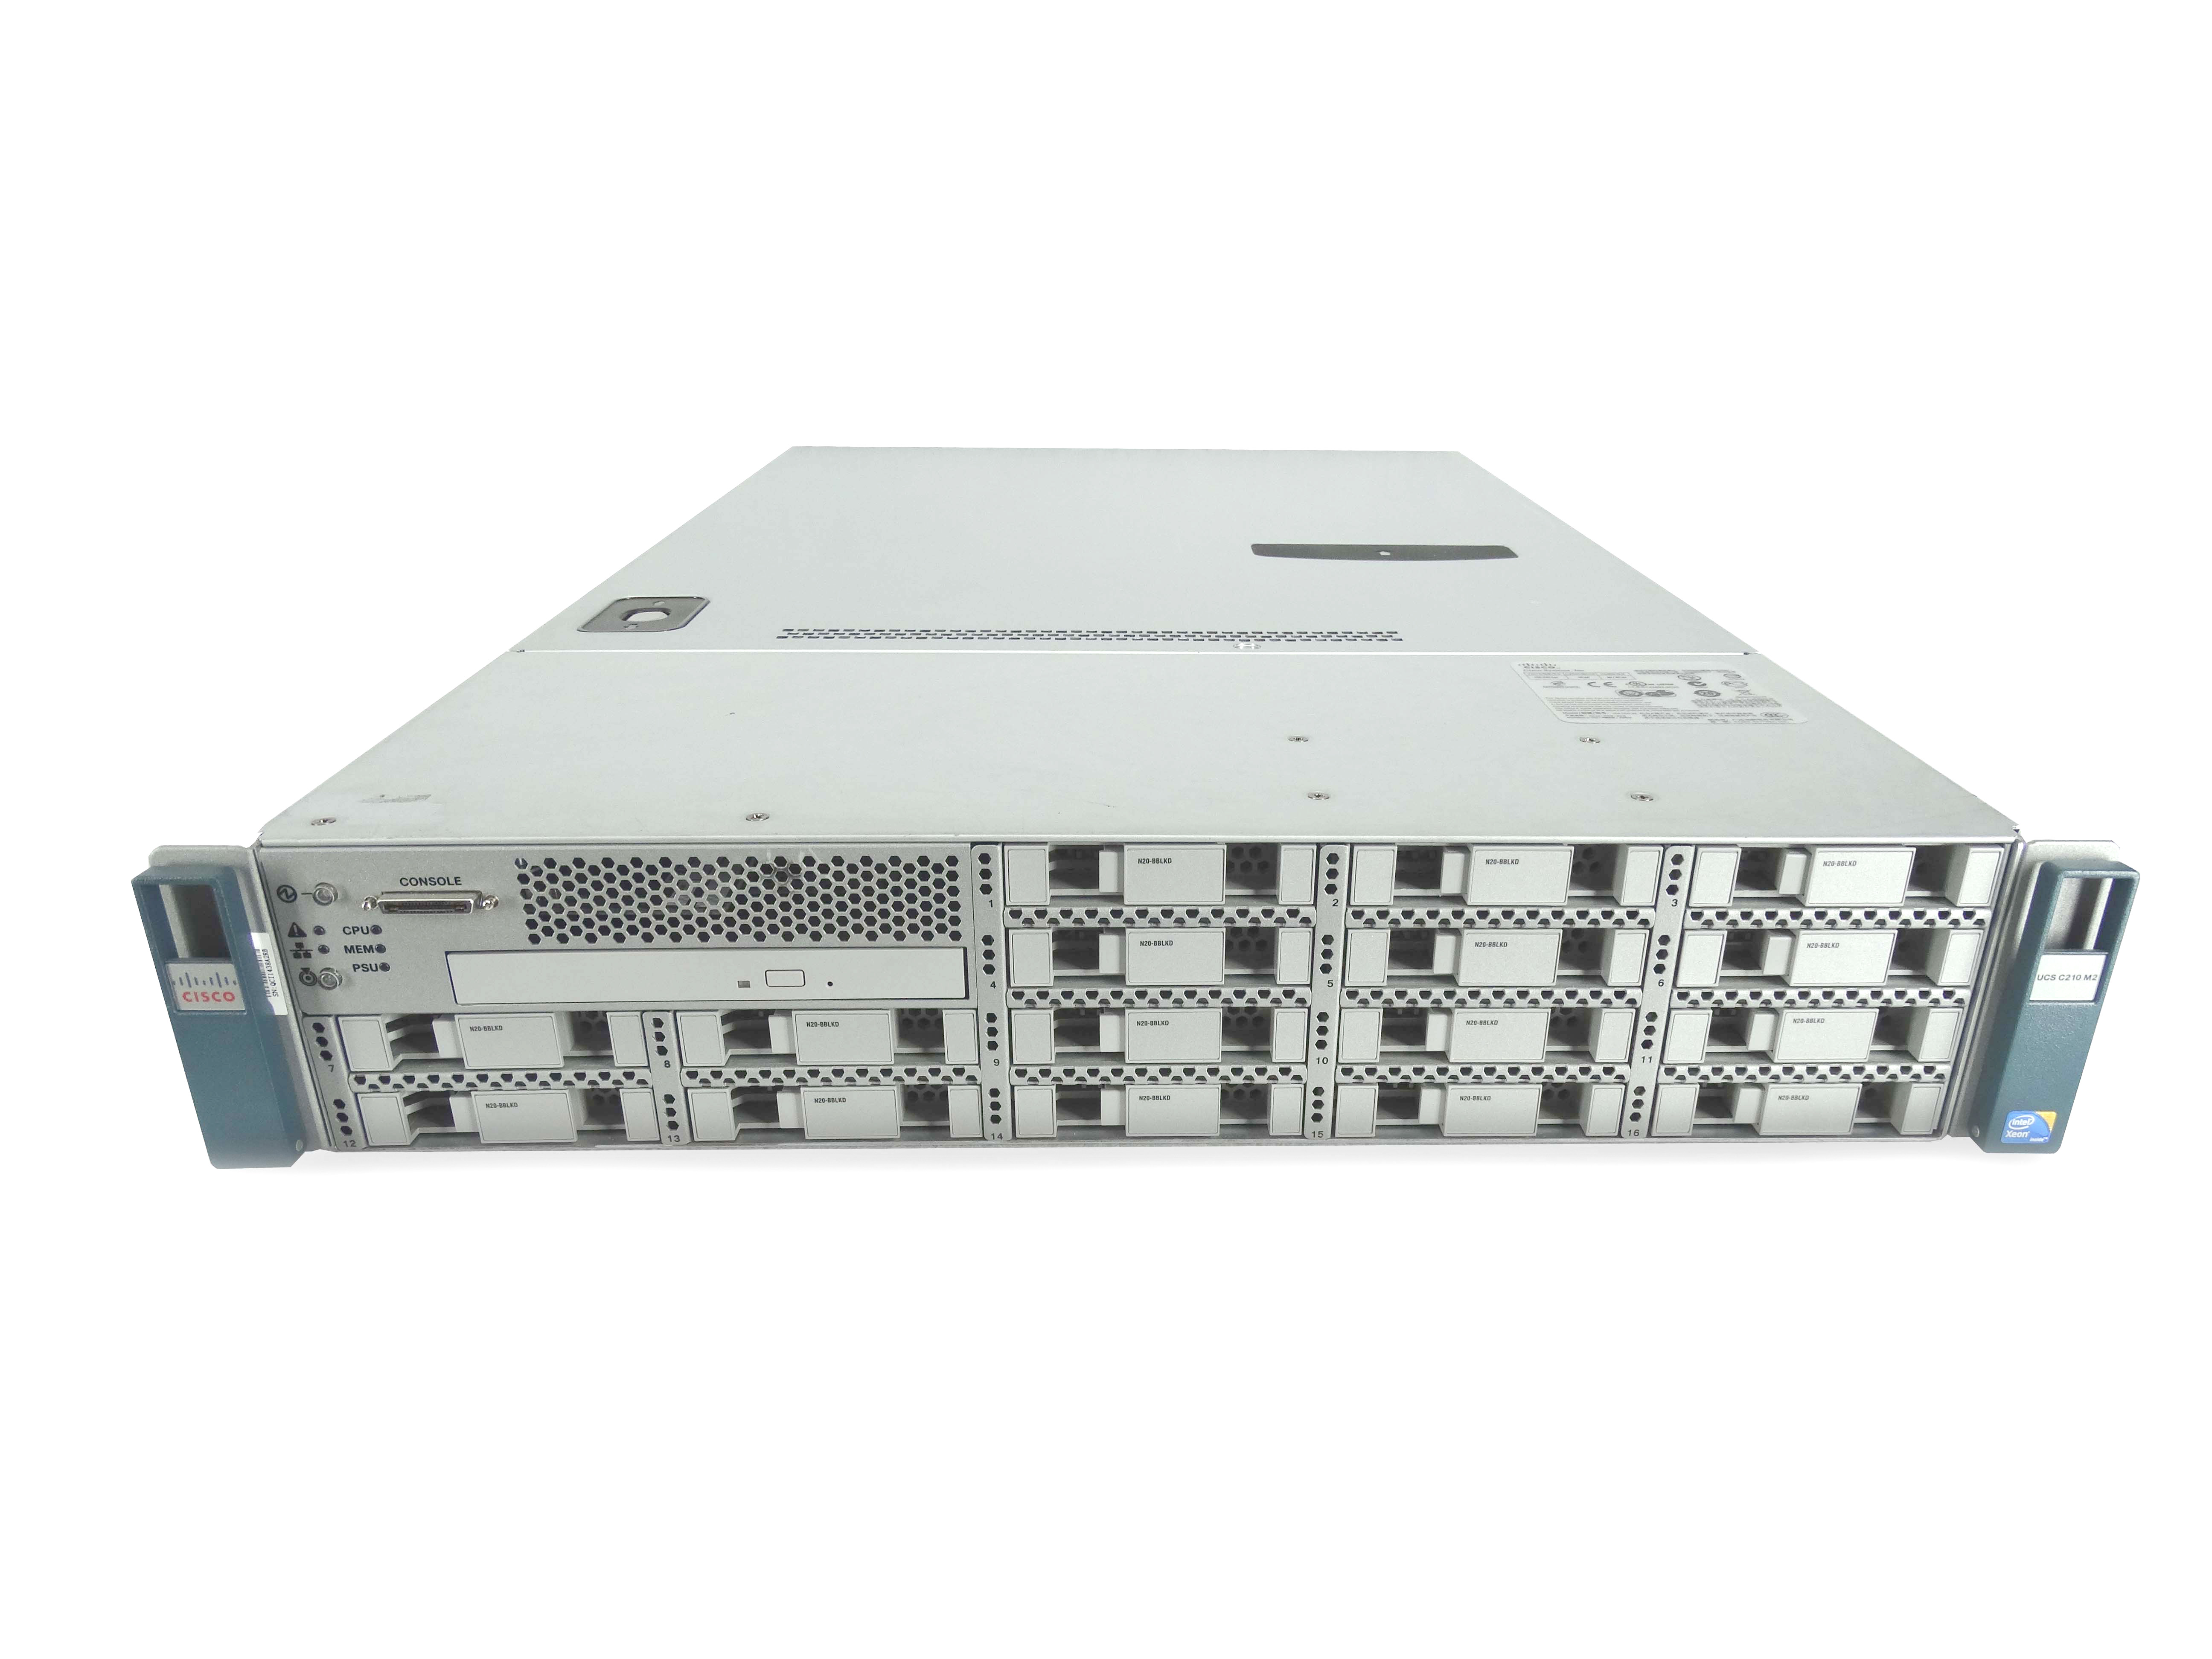 Cisco UCS C210 M2 16-Bay 2U SFF 2U Rackmount Server